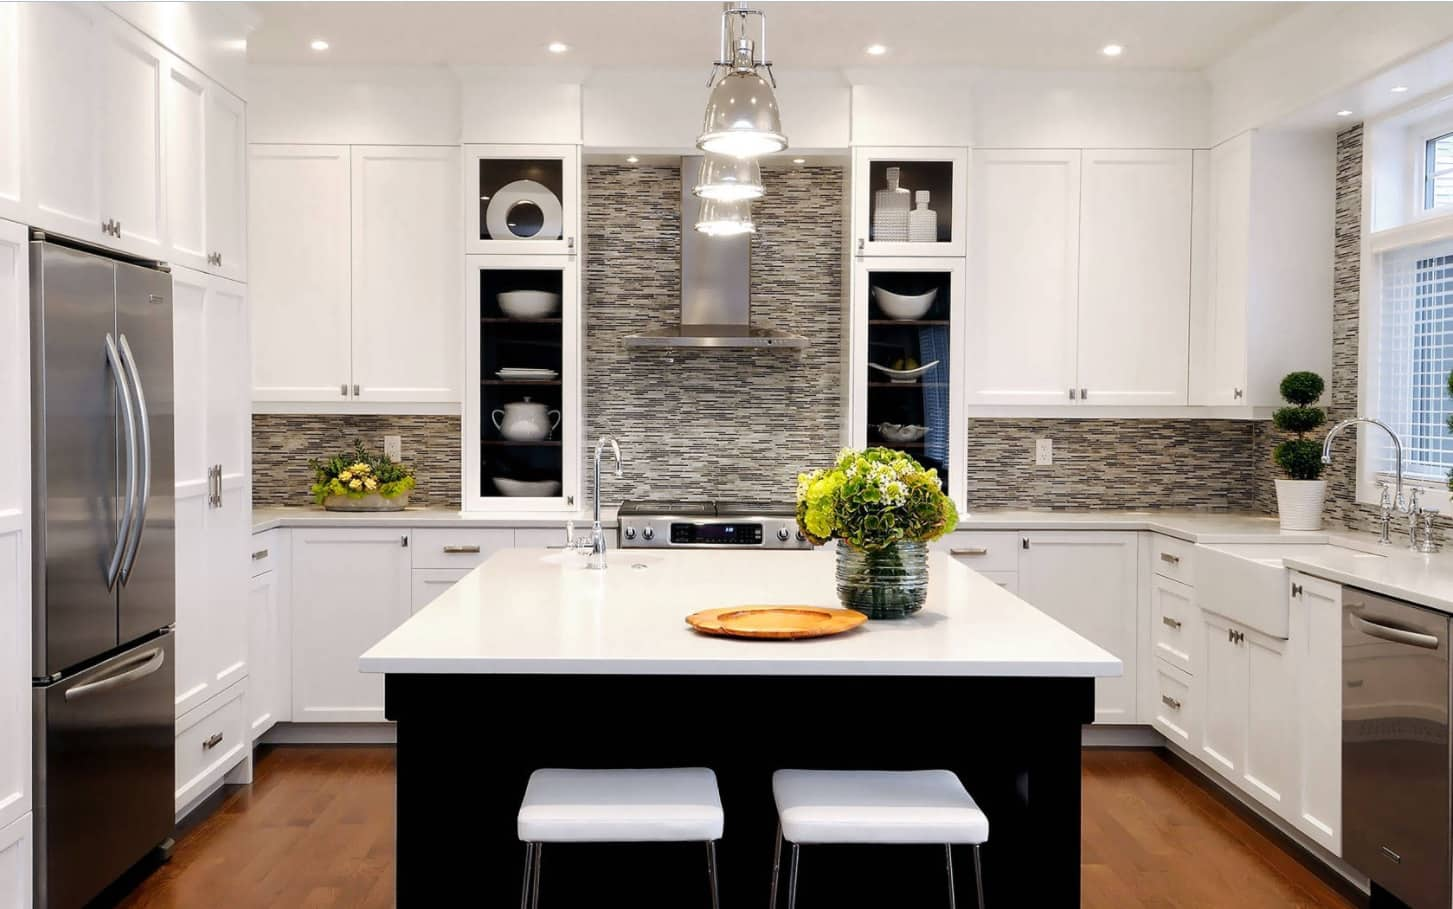 How Mosaic Tile Backsplash Adds Value To Our Kitchen Interiors. Black and white contrast for contemporary kitchen with masterful lighting and gray mosaic